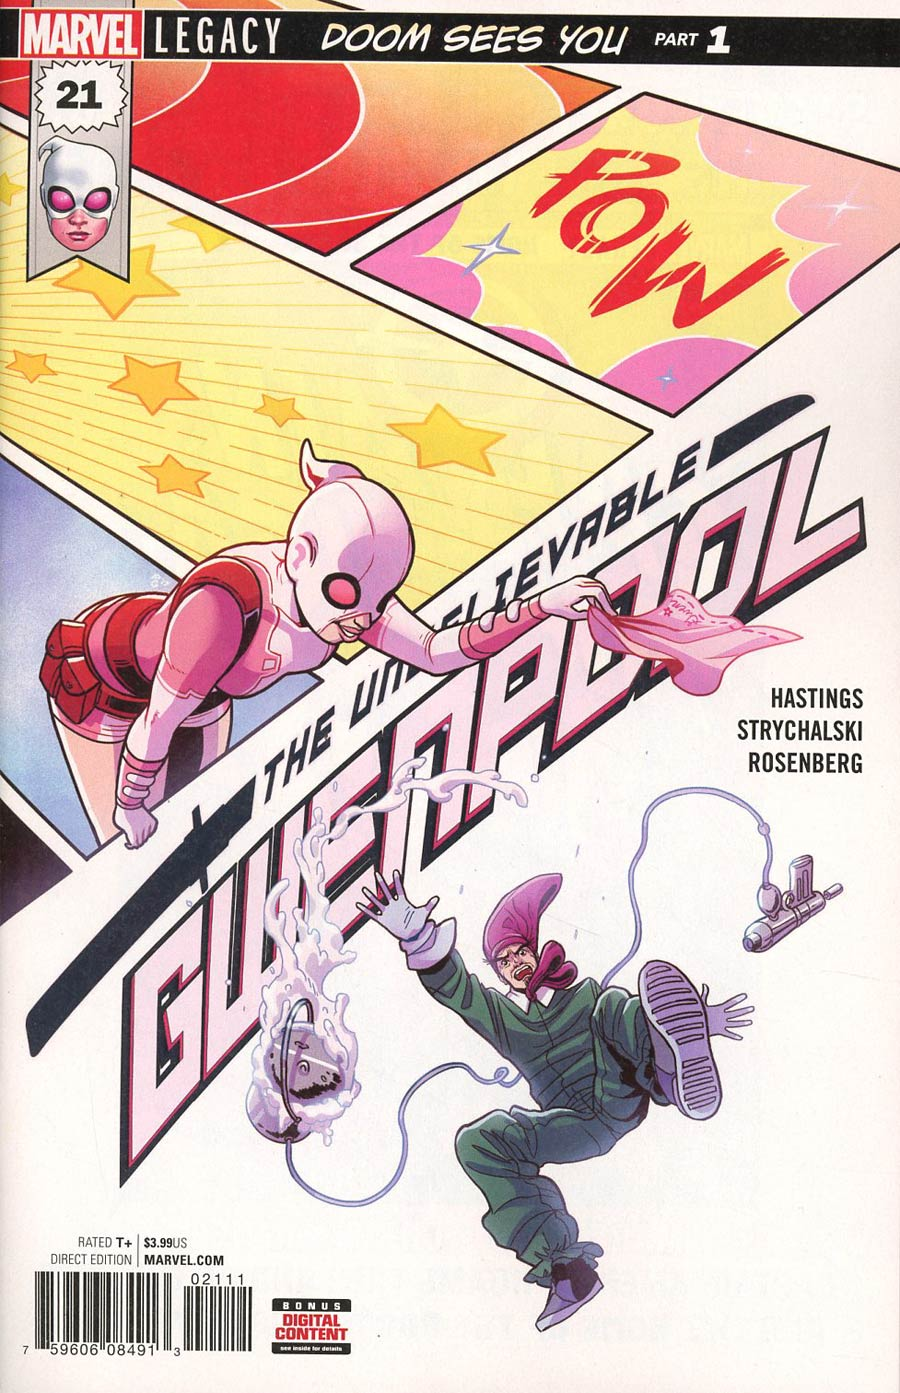 Gwenpool #21 Cover A 1st Ptg Regular Paulina Ganucheau Cover (Marvel Legacy Tie-In)